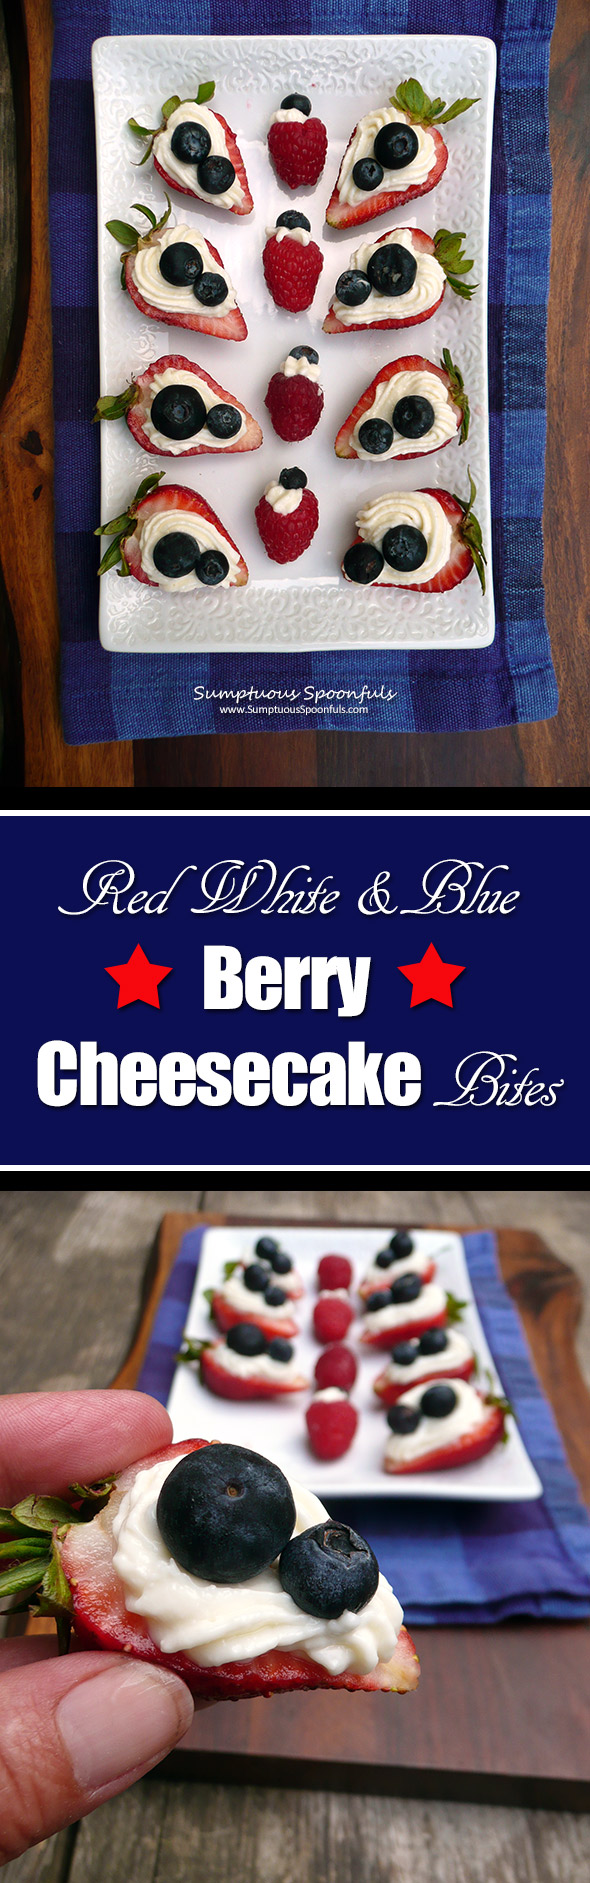 Red White & Blue Berry Cheesecake Bites ~ Sumptuous Spoonfuls #easy #patriotic #dessert #recipe